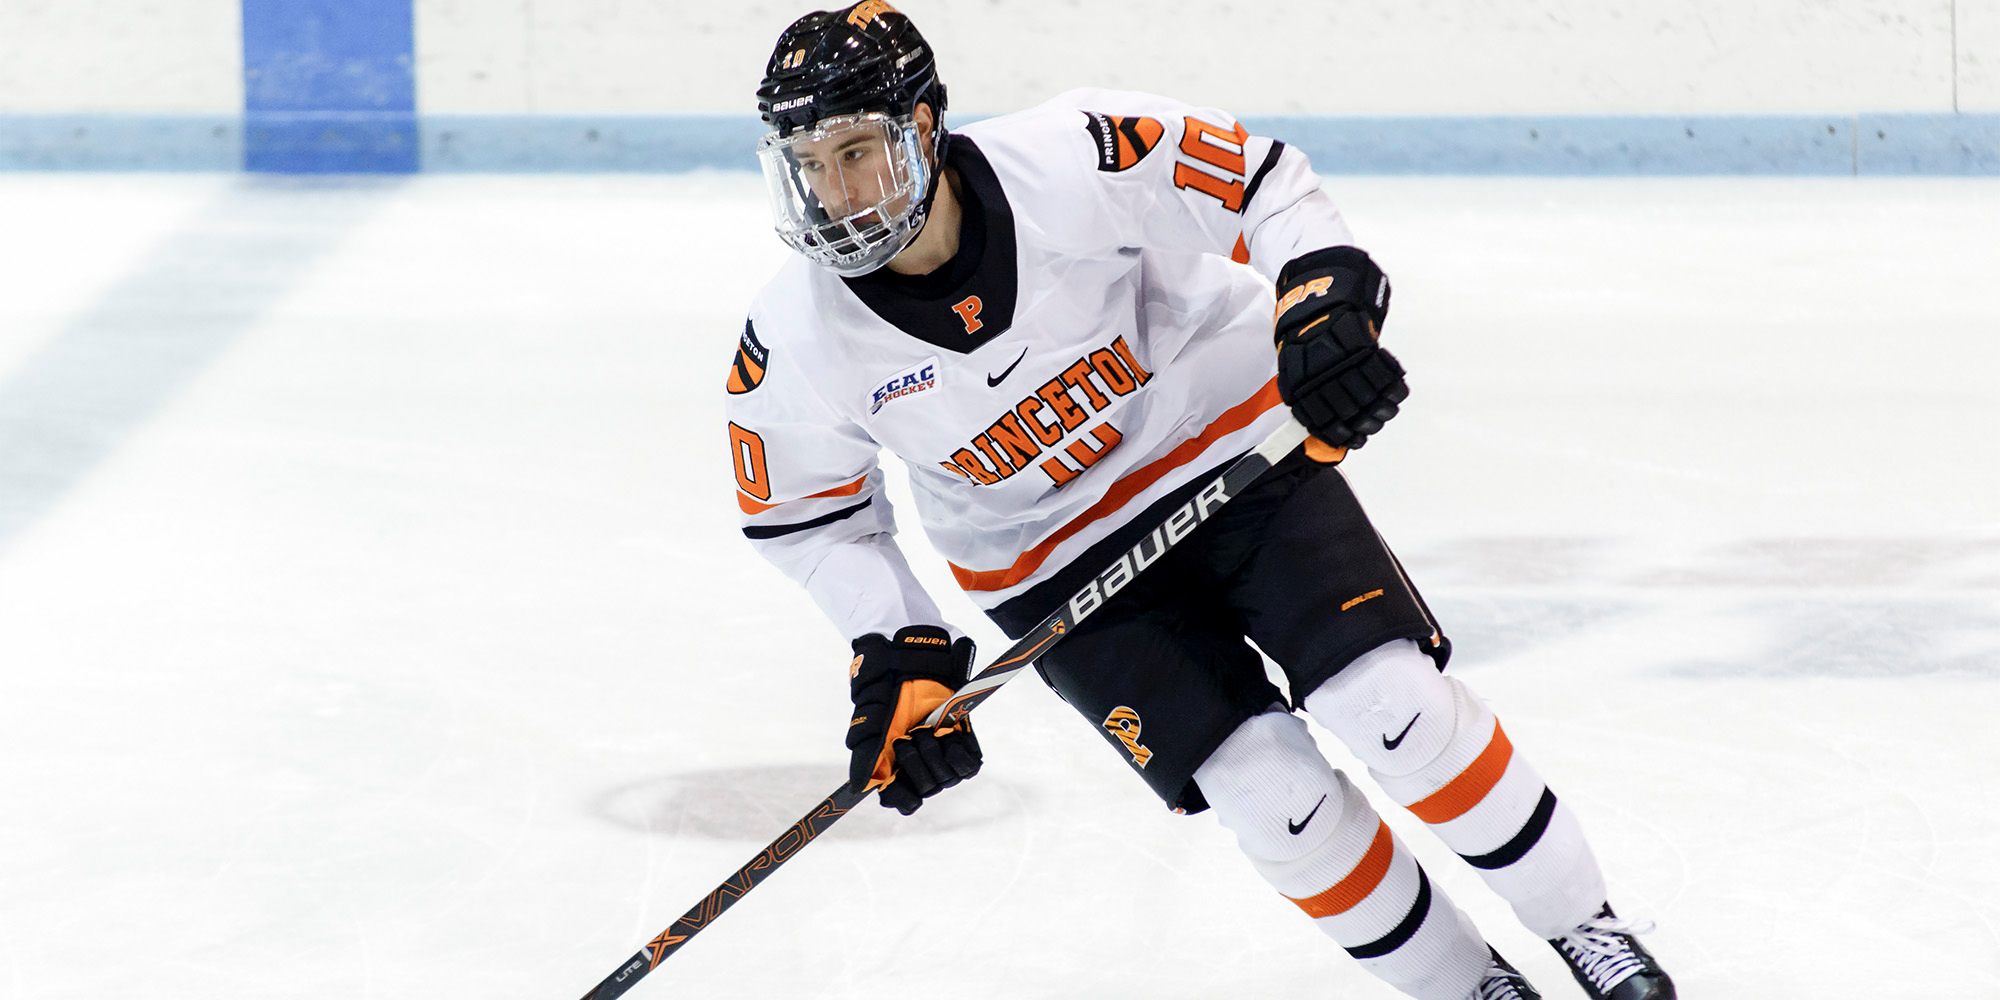 Cressey Scores as Relentless Tigers Fall at Harvard